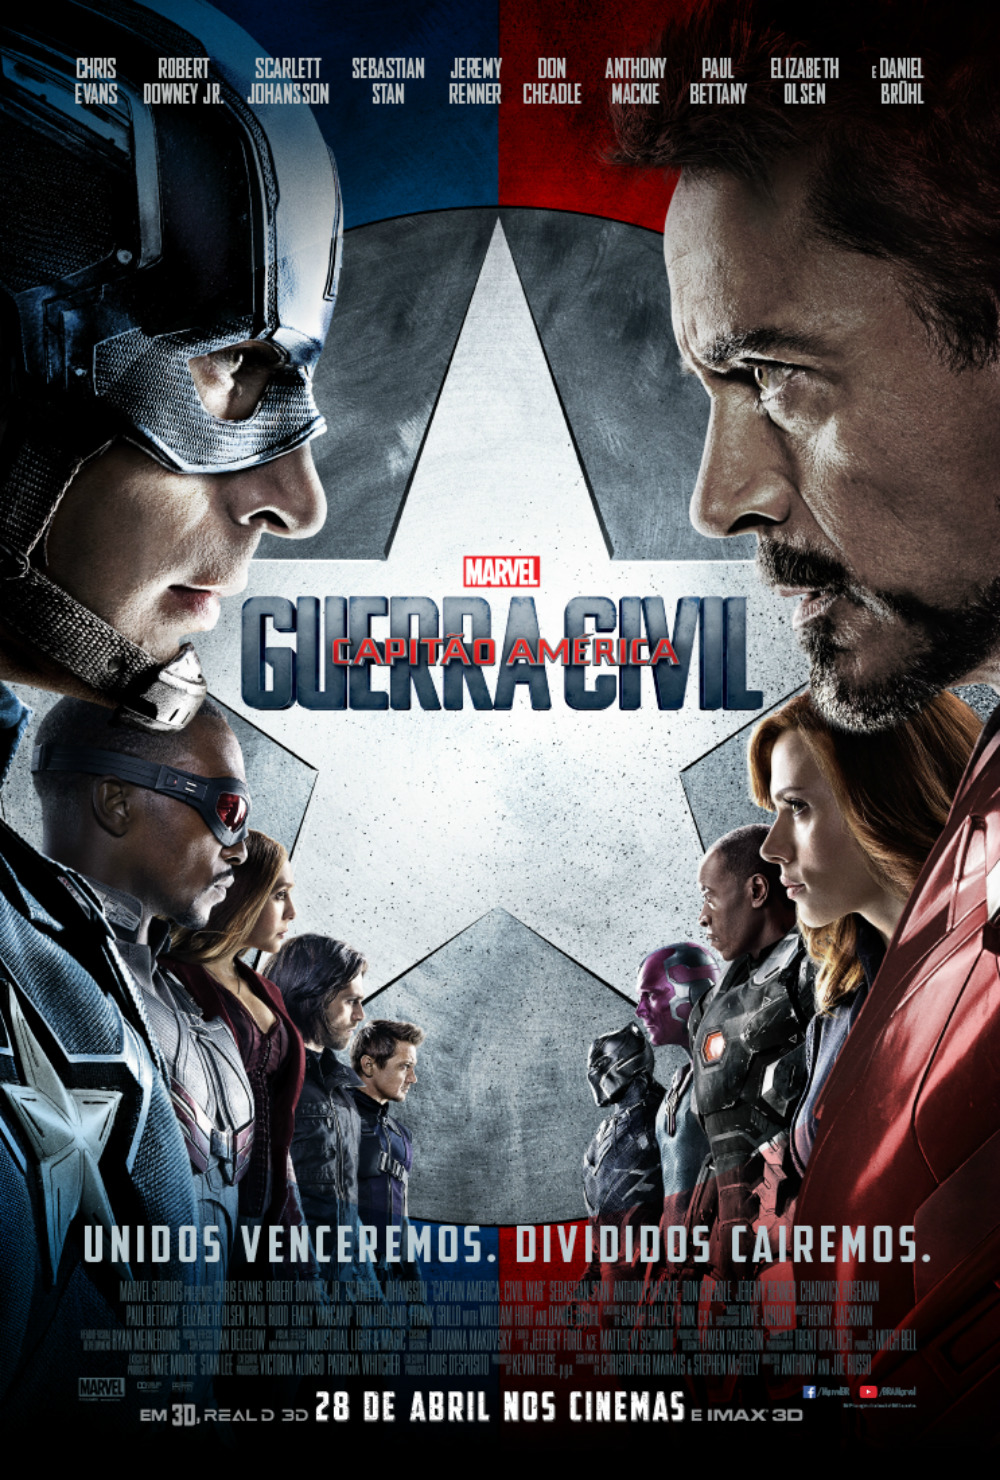 Capitao America - Guerra Civil